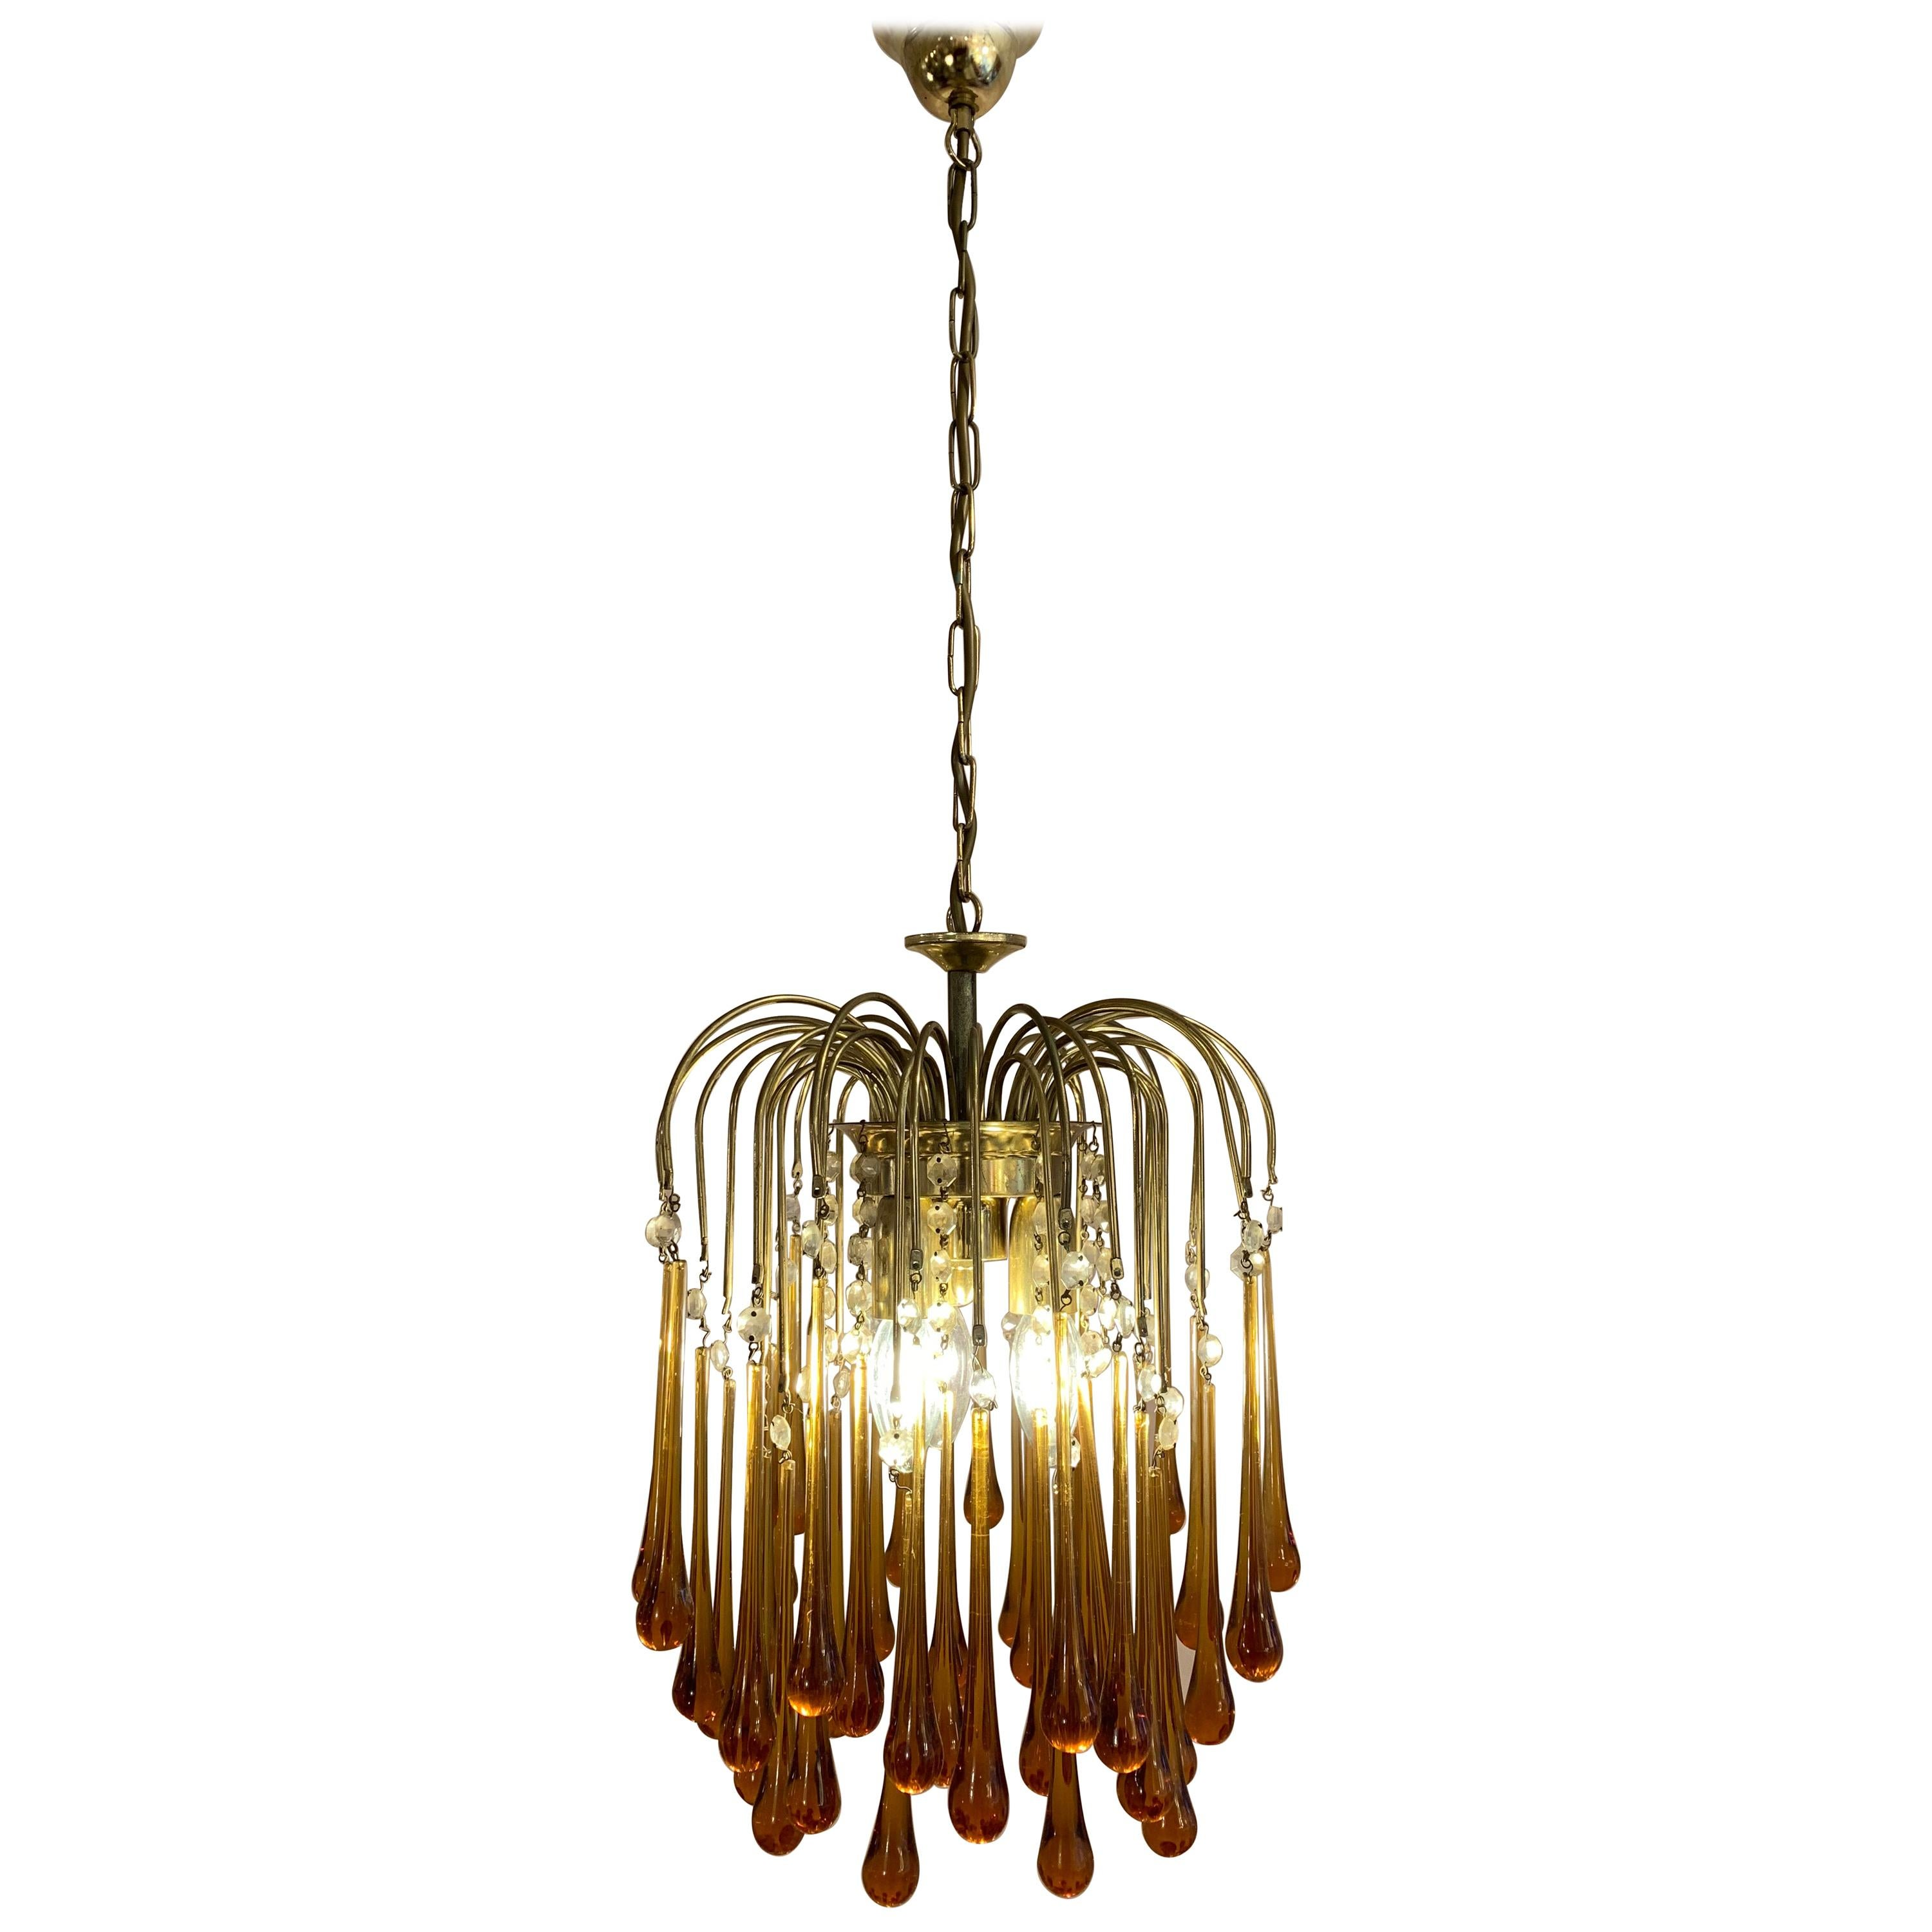 1960s Italian Murano Amber Glass and Brass Teardrop Chandelier by Paolo Venini